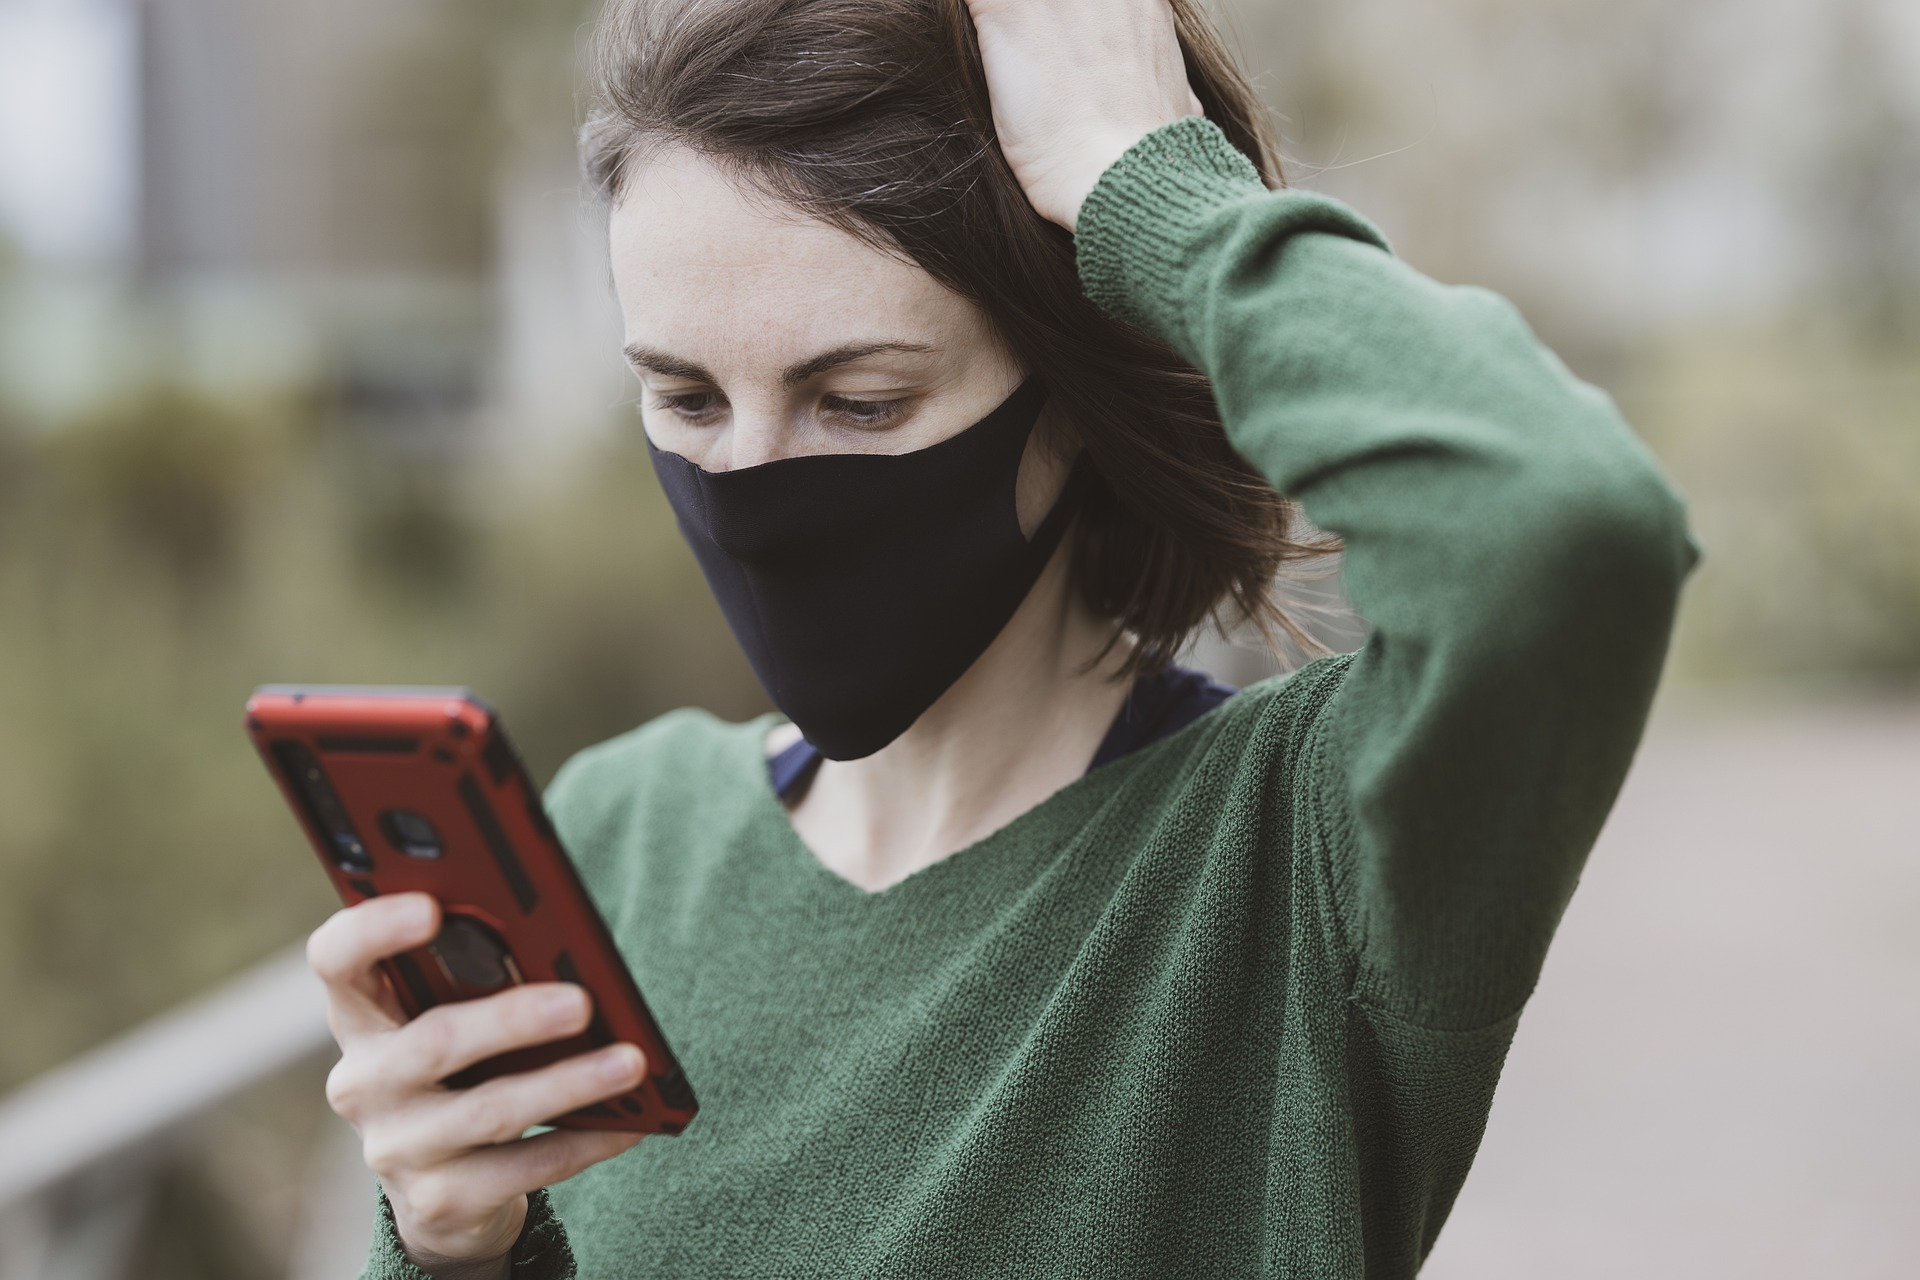 Masked girl with phone